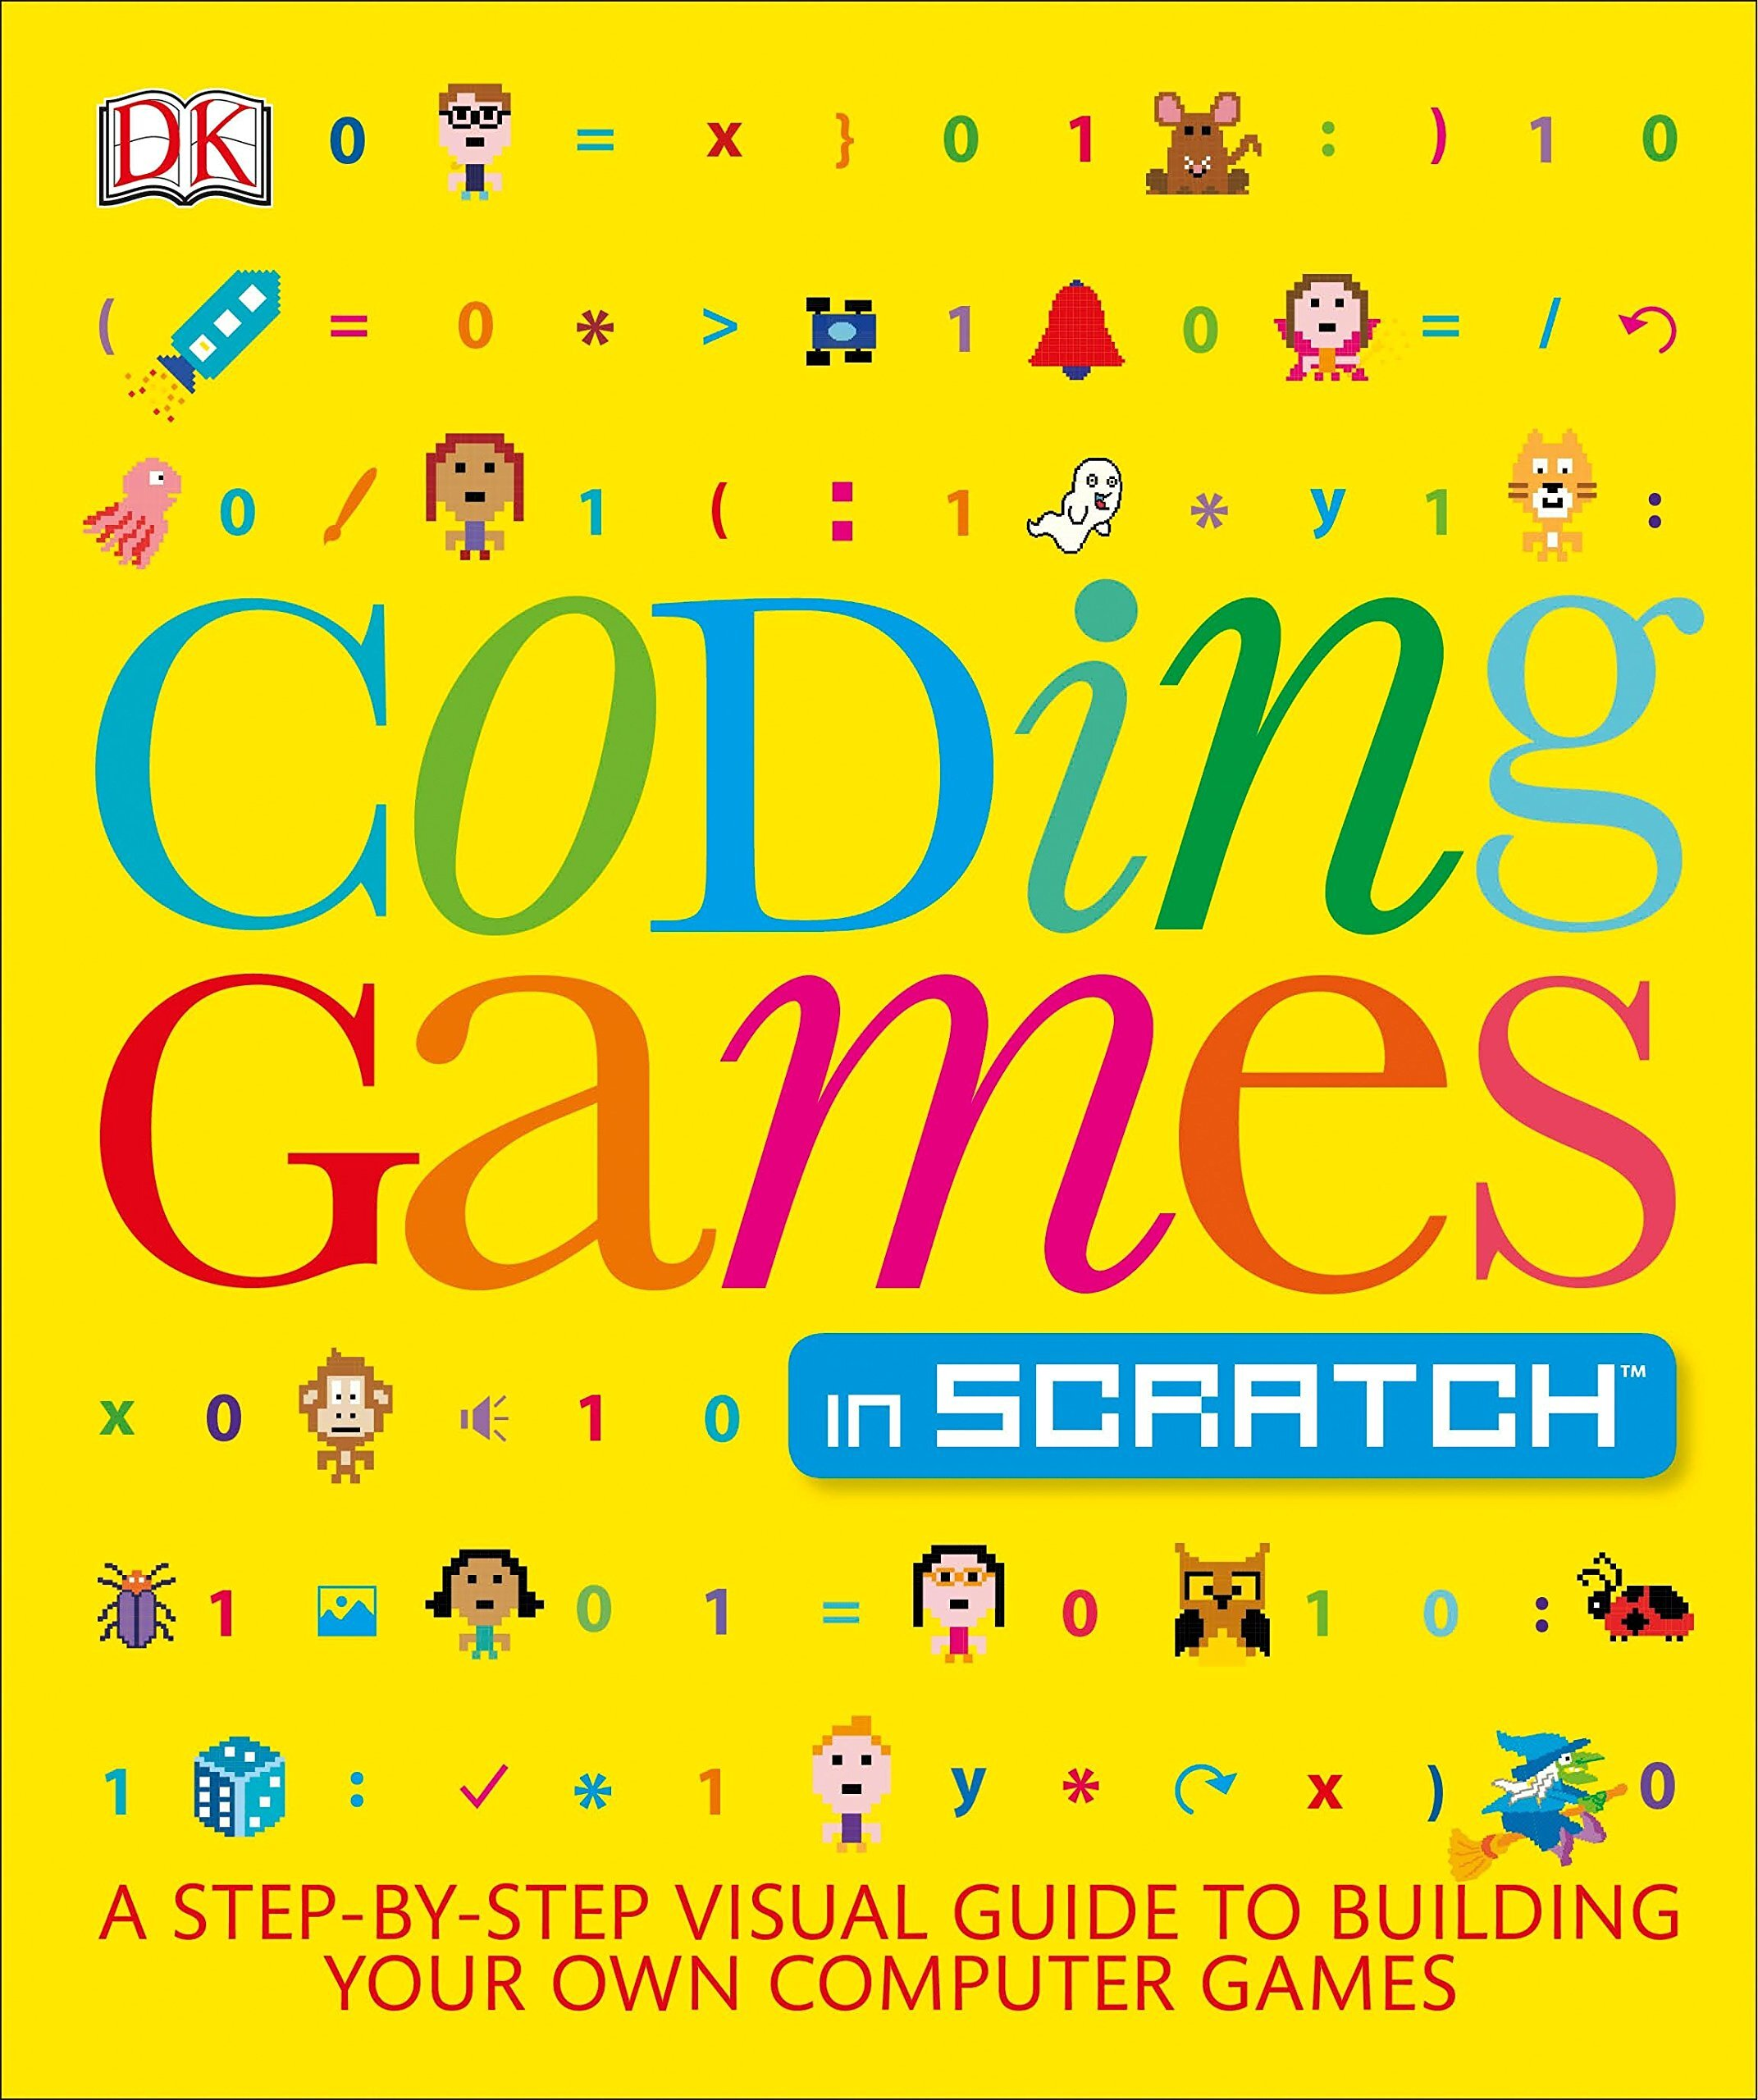 Coding your own Game